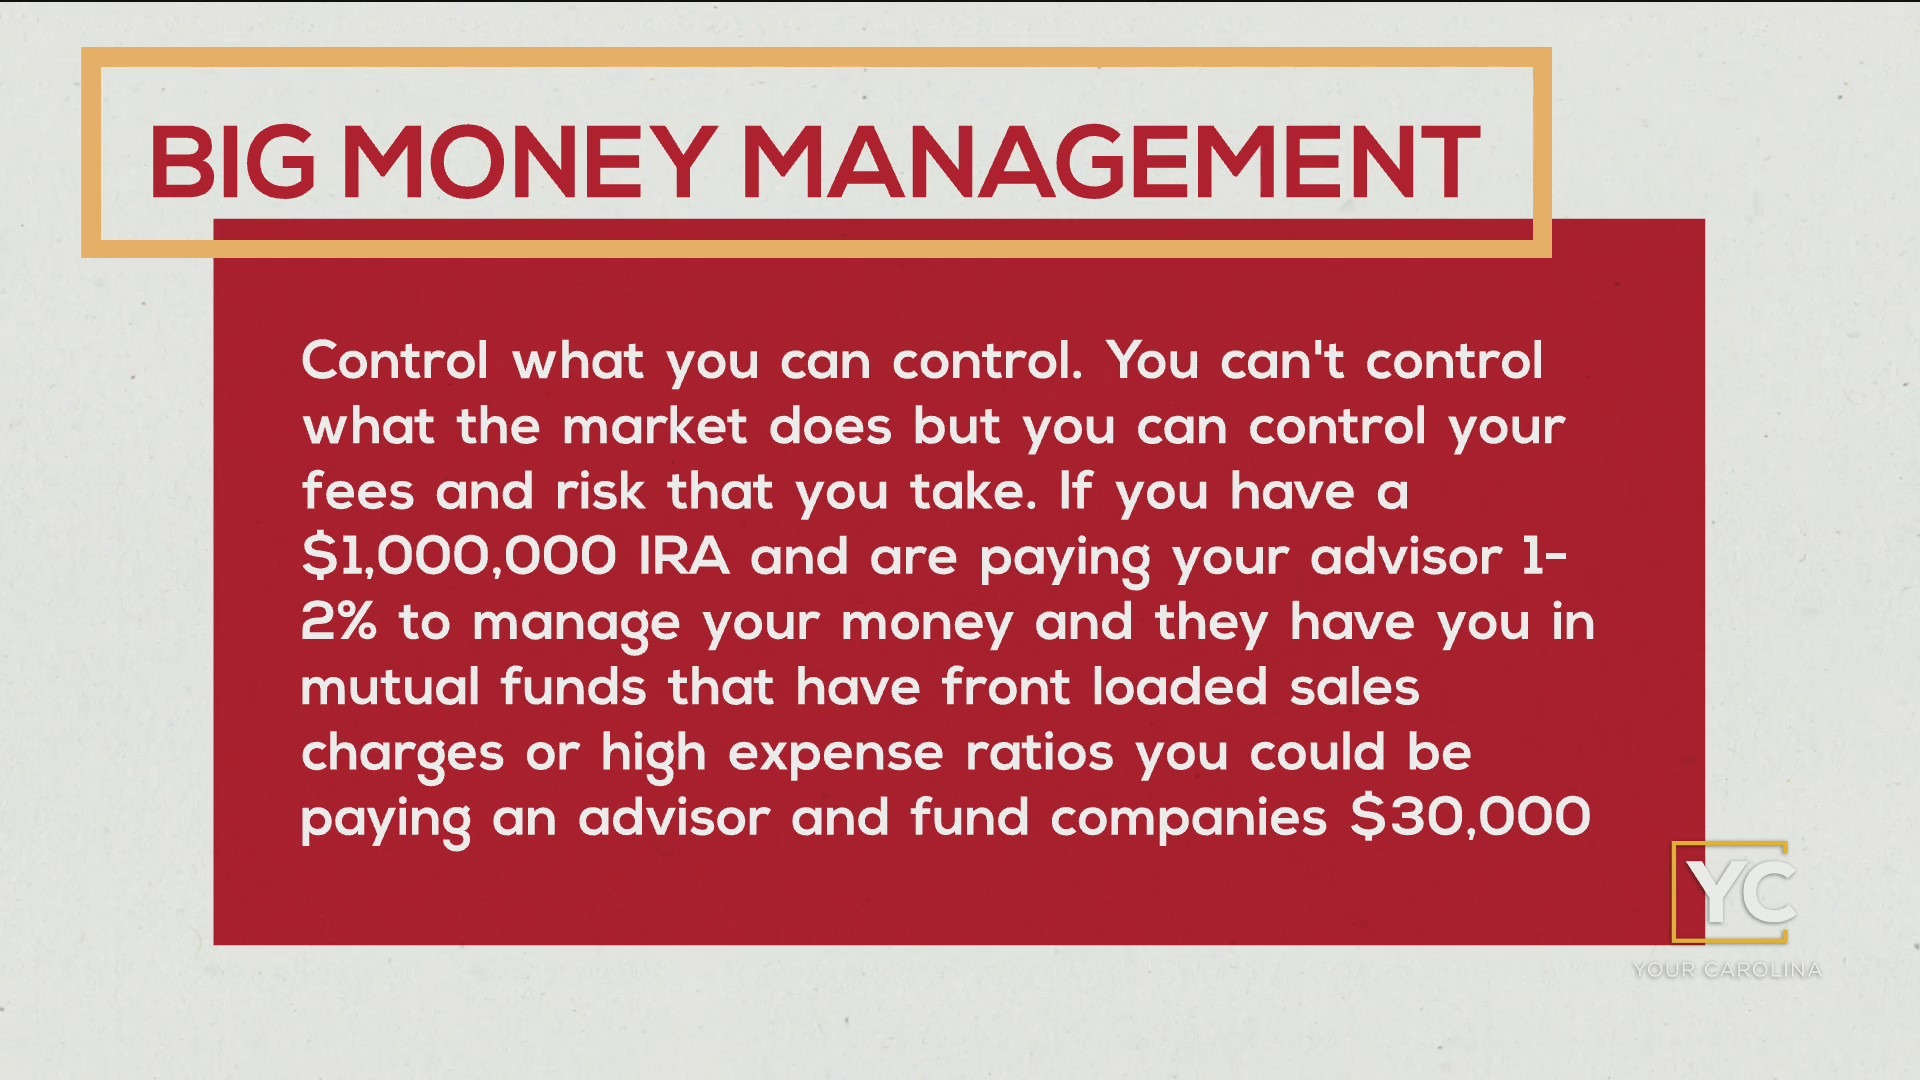 Big Money Management Financial Tip - Control What You Can Control